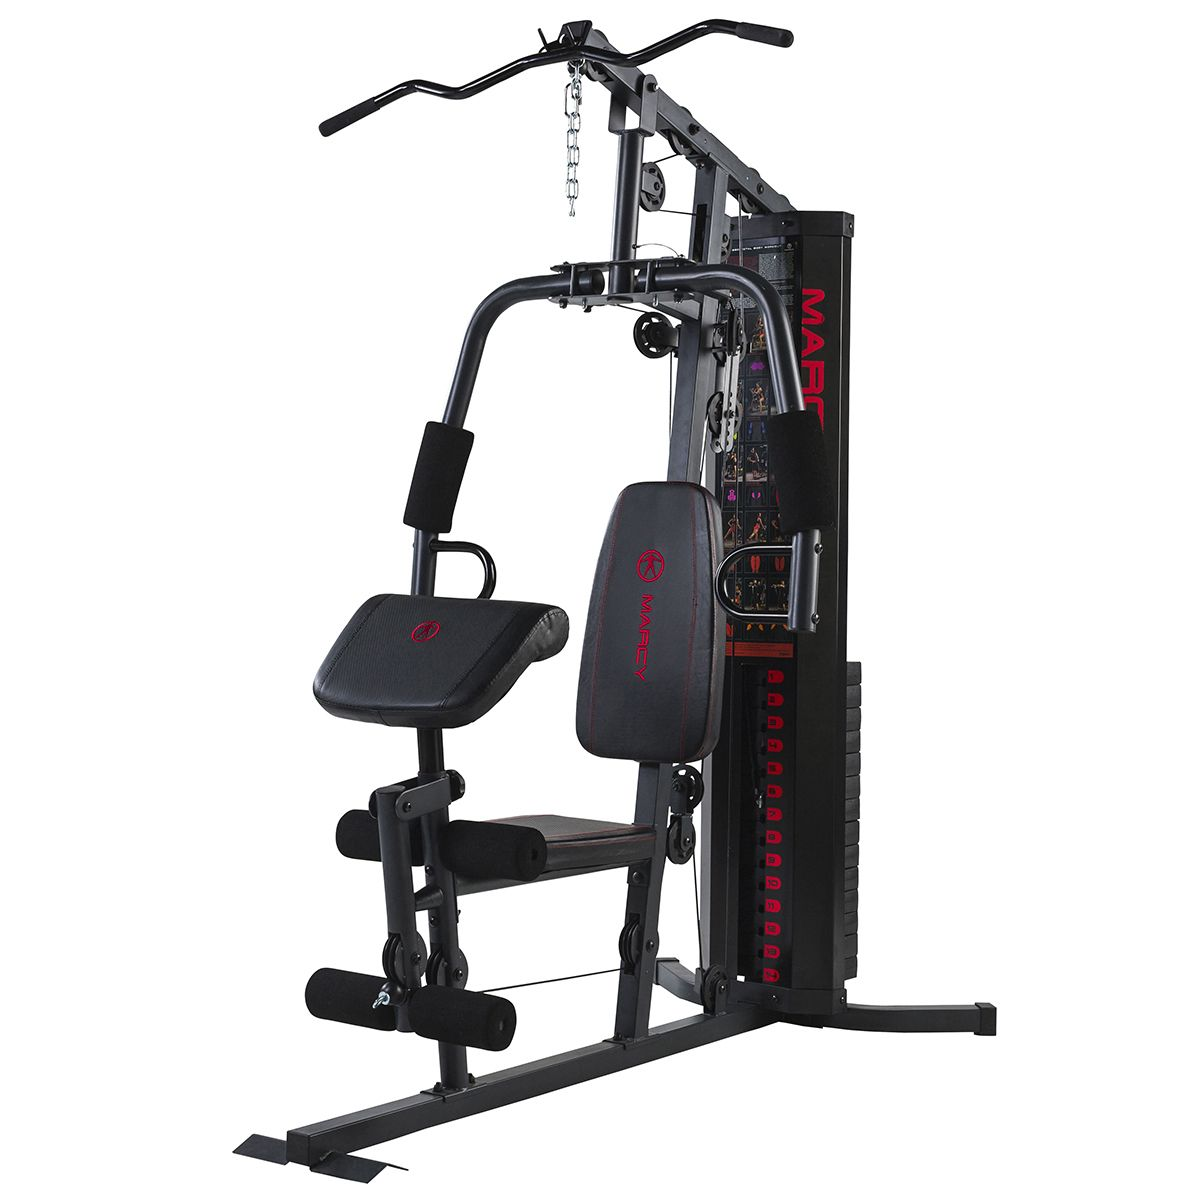 Marcy eclipse hg compact home gym exercise